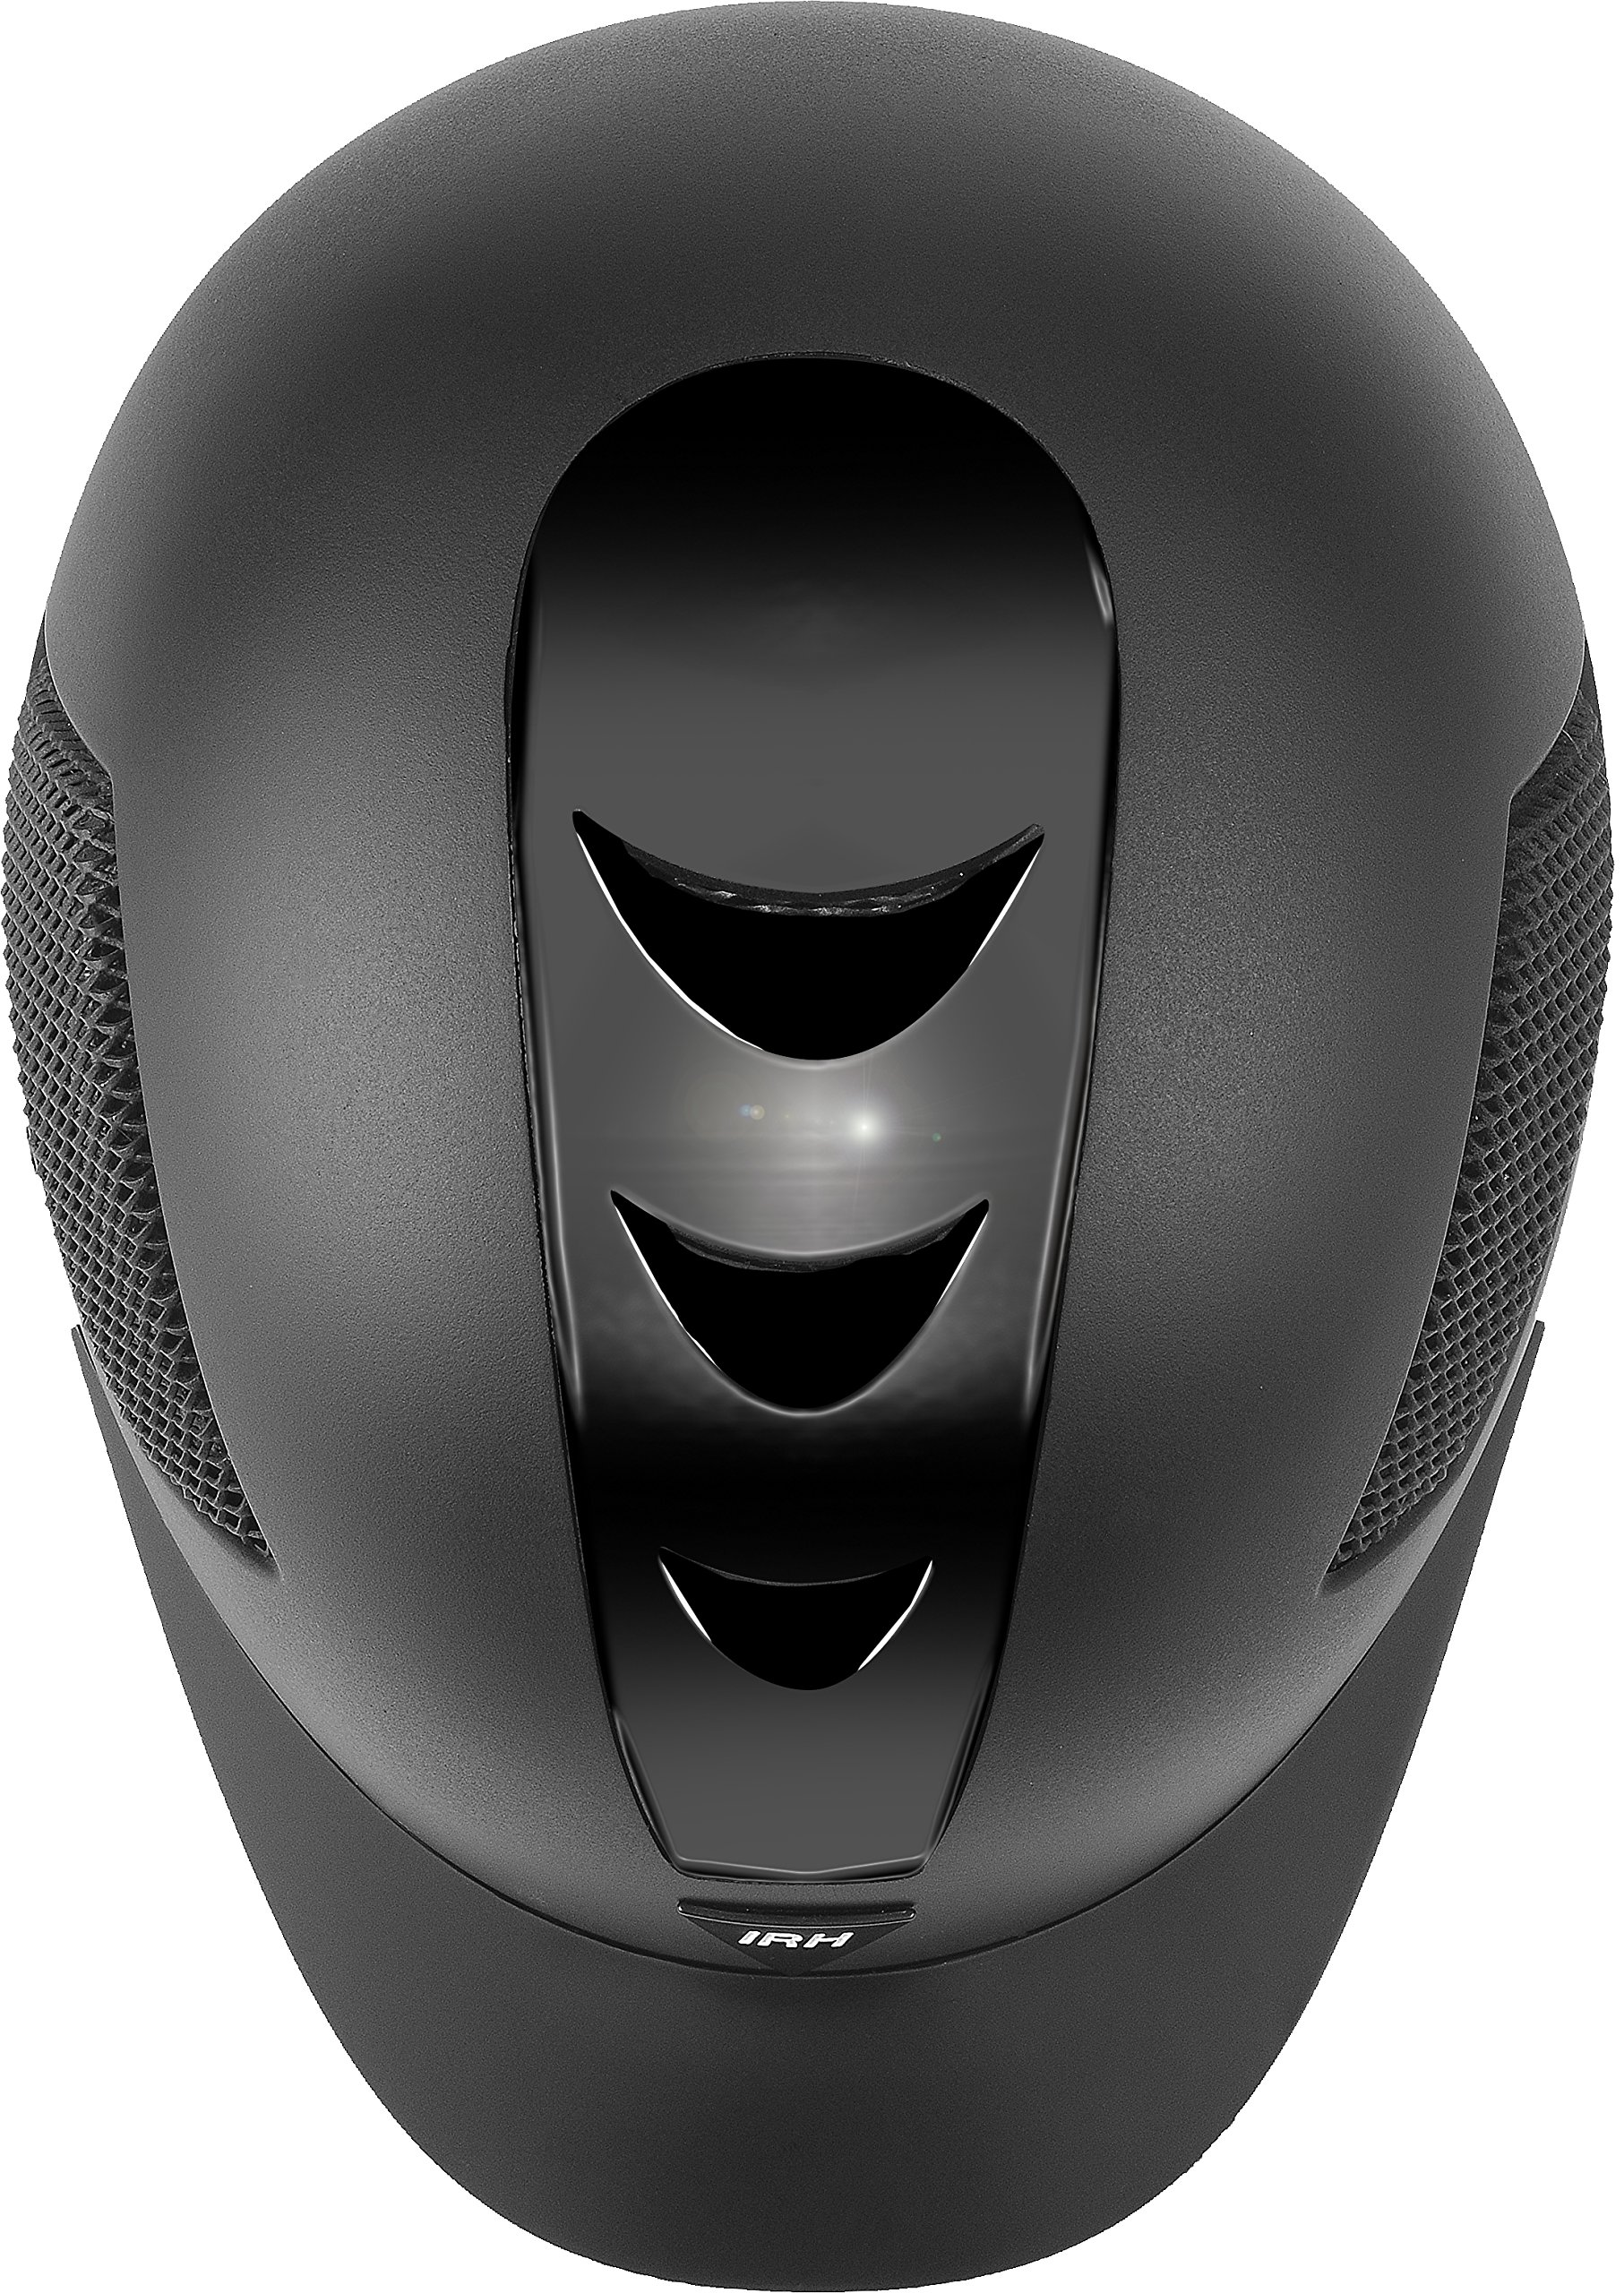 ELITE EXTREME Full Wrap-Around Harness Helmet with Matte Black Shell & Glossy Black, Size 6 7/8, Black by ELITE EXTREME (Image #3)